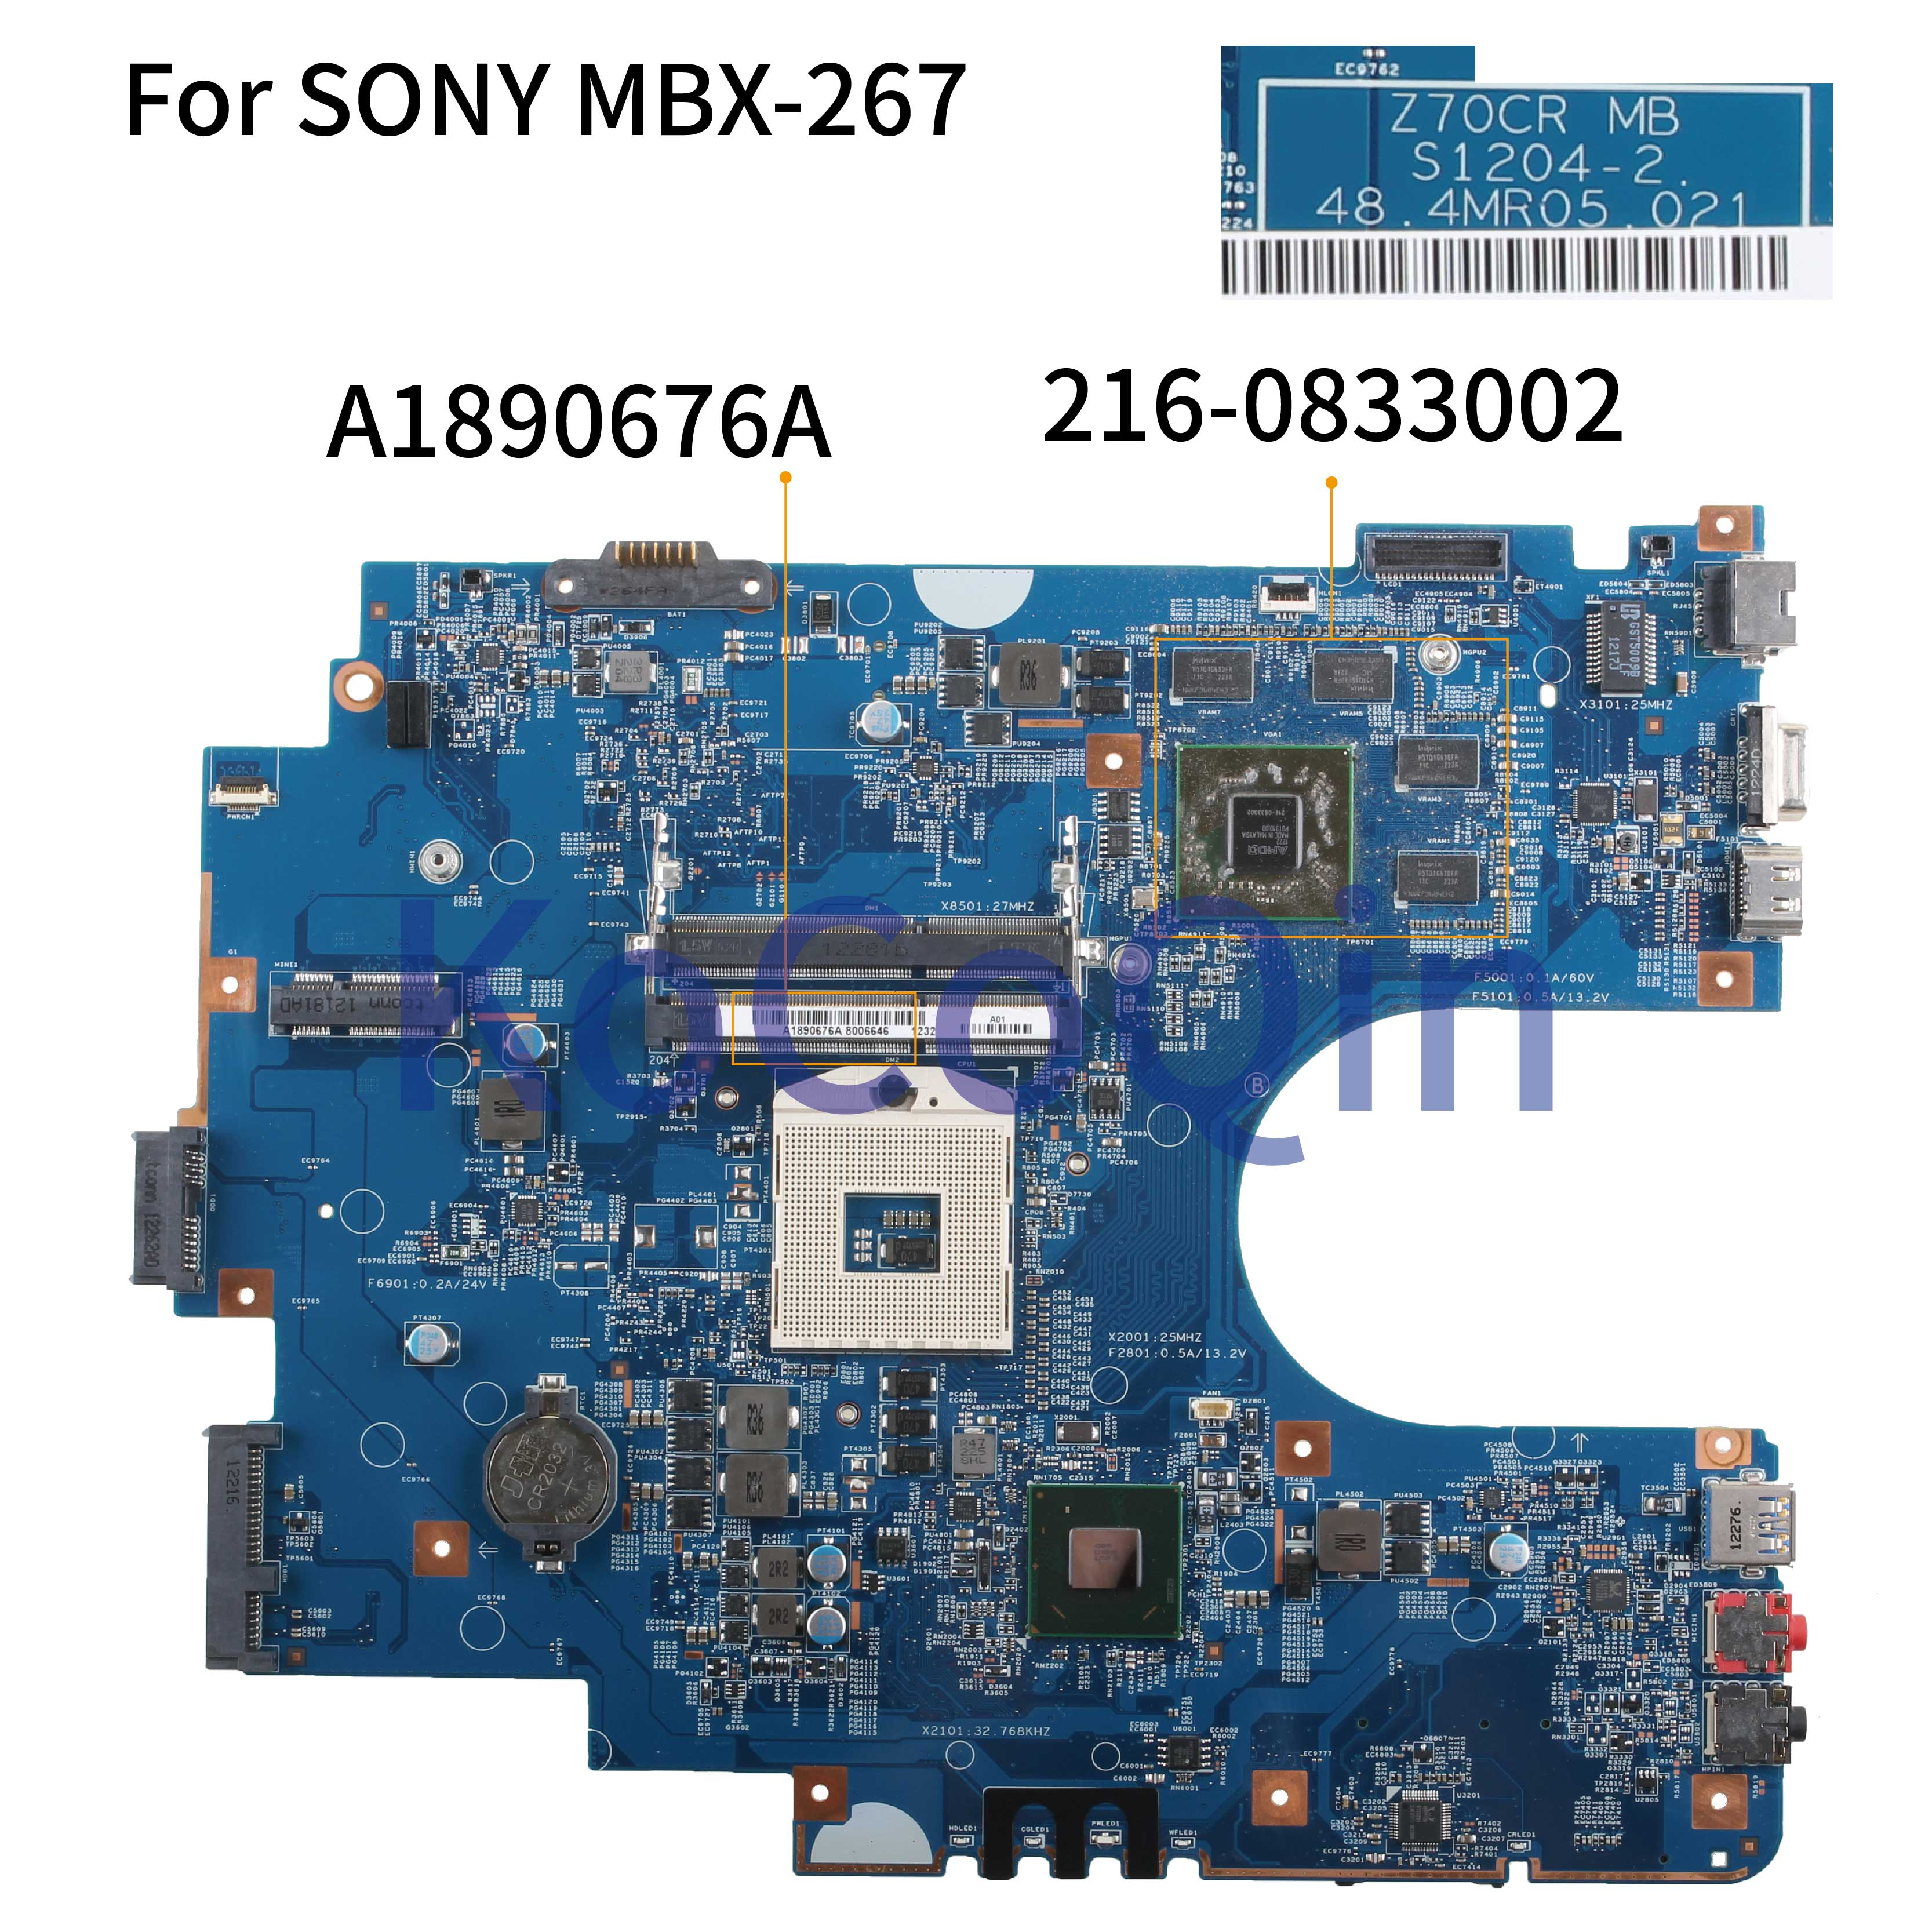 KoCoQin Laptop Motherboard For SONY Sve17 Sve1711 MBX-267 Mainboard Z70CR S1204-2 A1890676A 48.4MR05.021 HM70 216-0833002